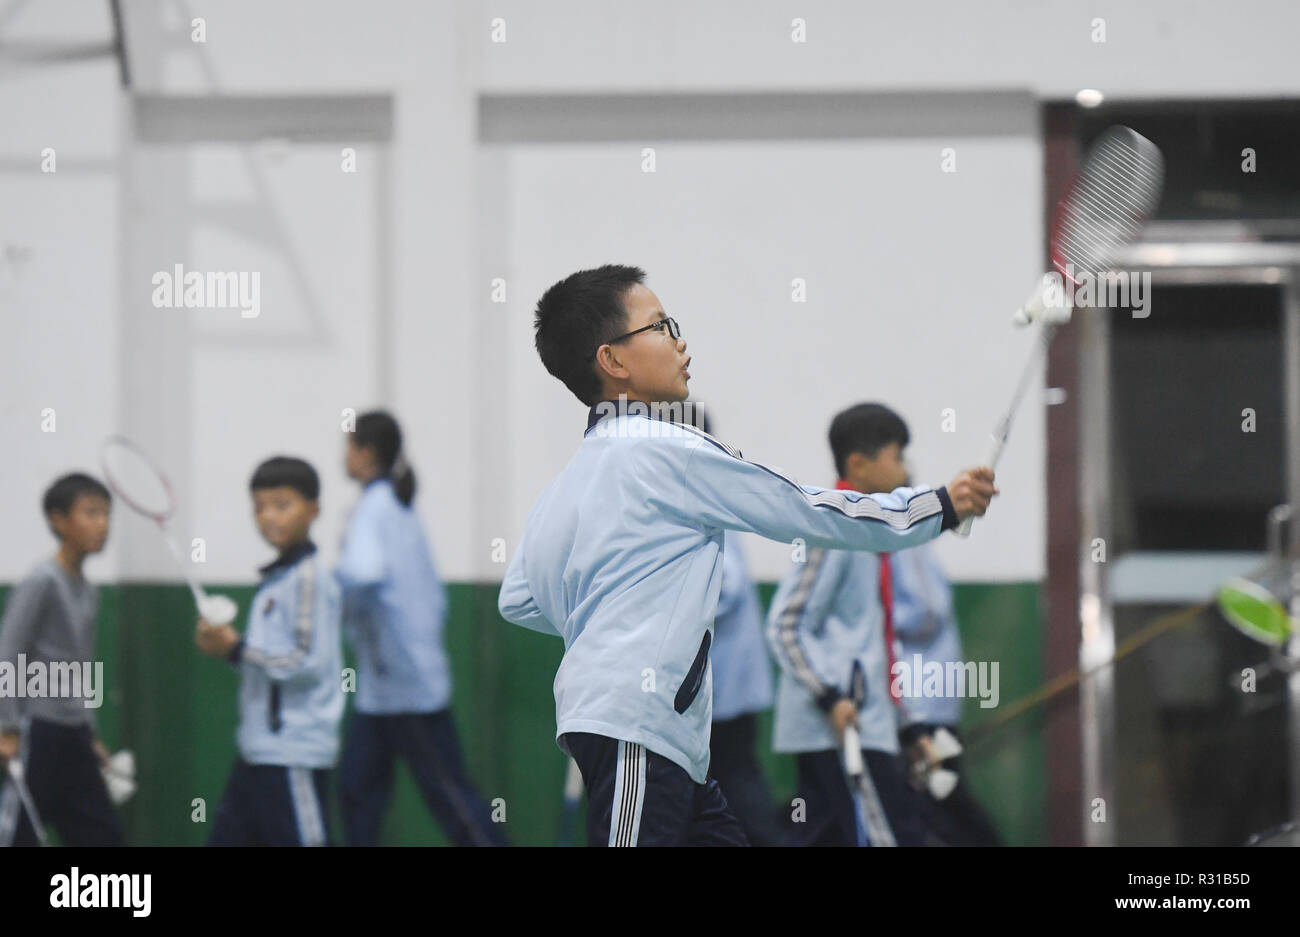 Shishi, China's Fujian Province. 20th Nov, 2018. Students attend badminton class at Jinfeng experimental school at Shishi City, southeast China's Fujian Province, Nov. 20, 2018. More than 40 schools provide extracurricular training for students whose parents are still at work when school is over in Shishi. Credit: Song Weiwei/Xinhua/Alamy Live News - Stock Image